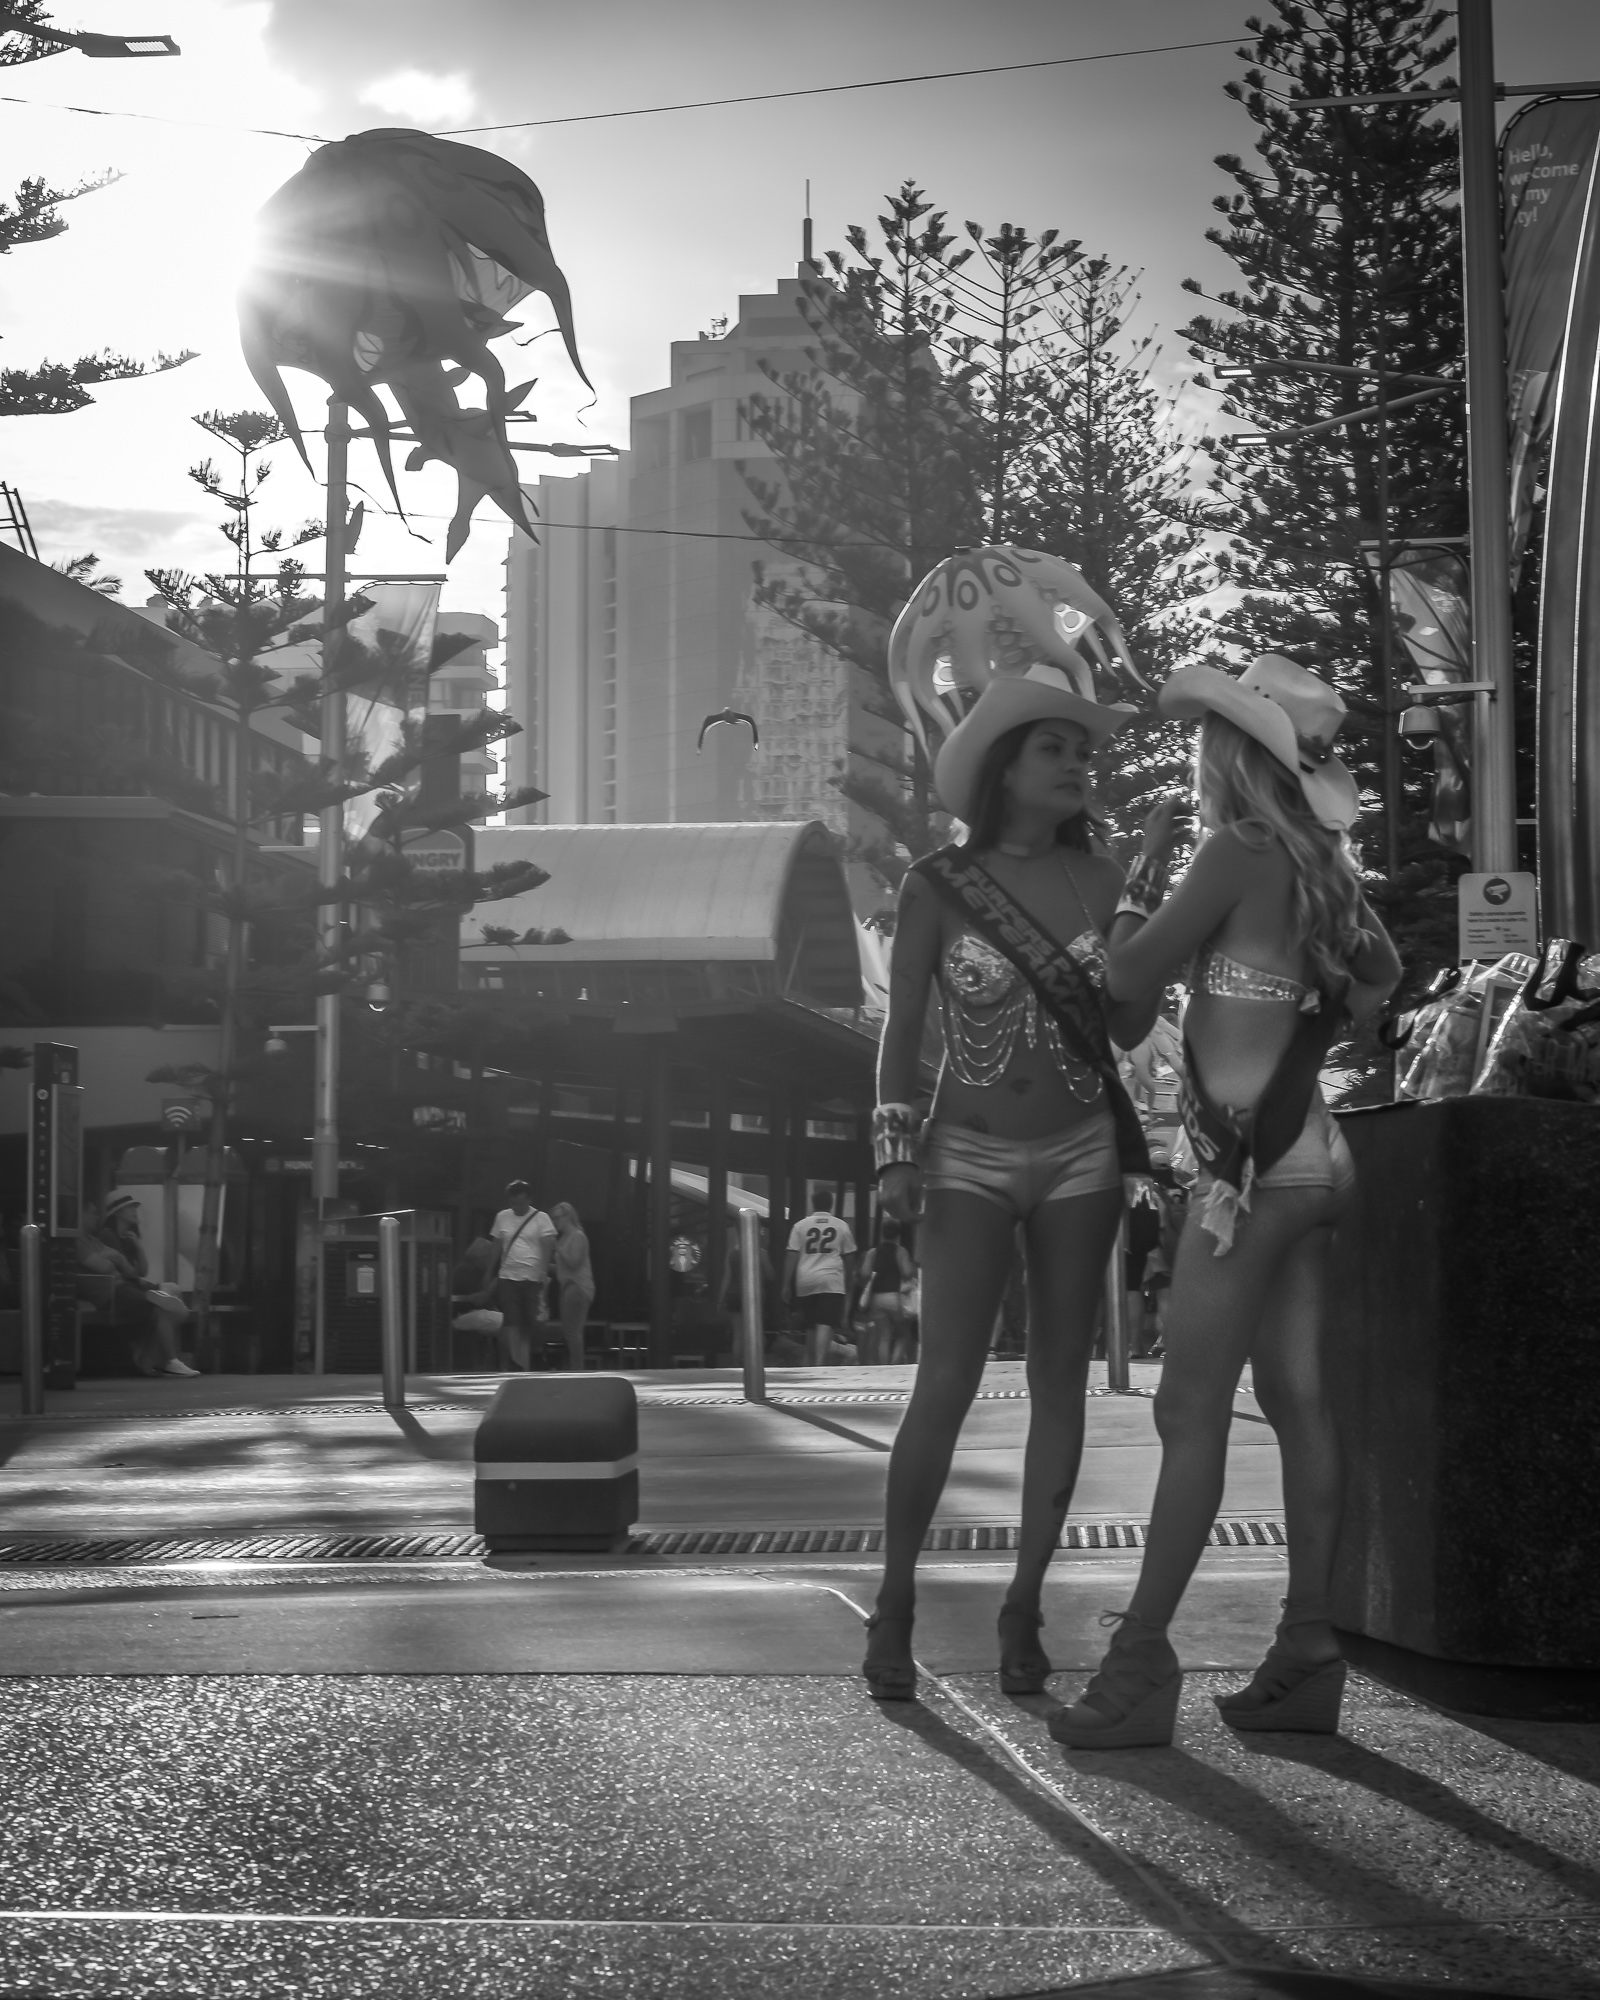 Gold Coast Meter Maids